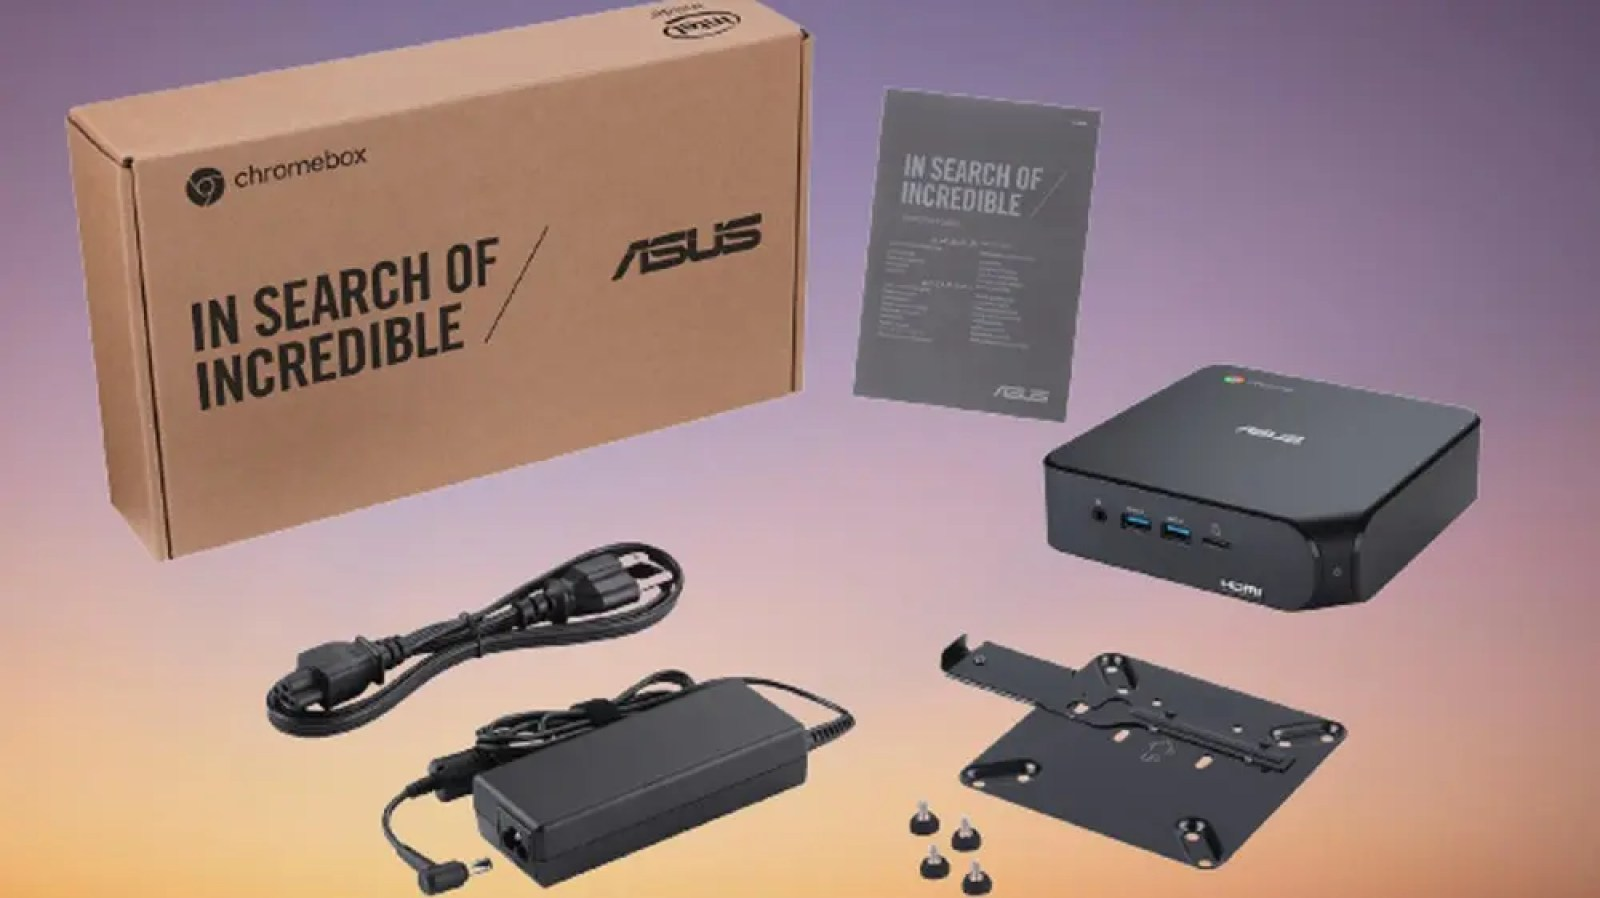 The ASUS Chromebox 4 and all included hardware